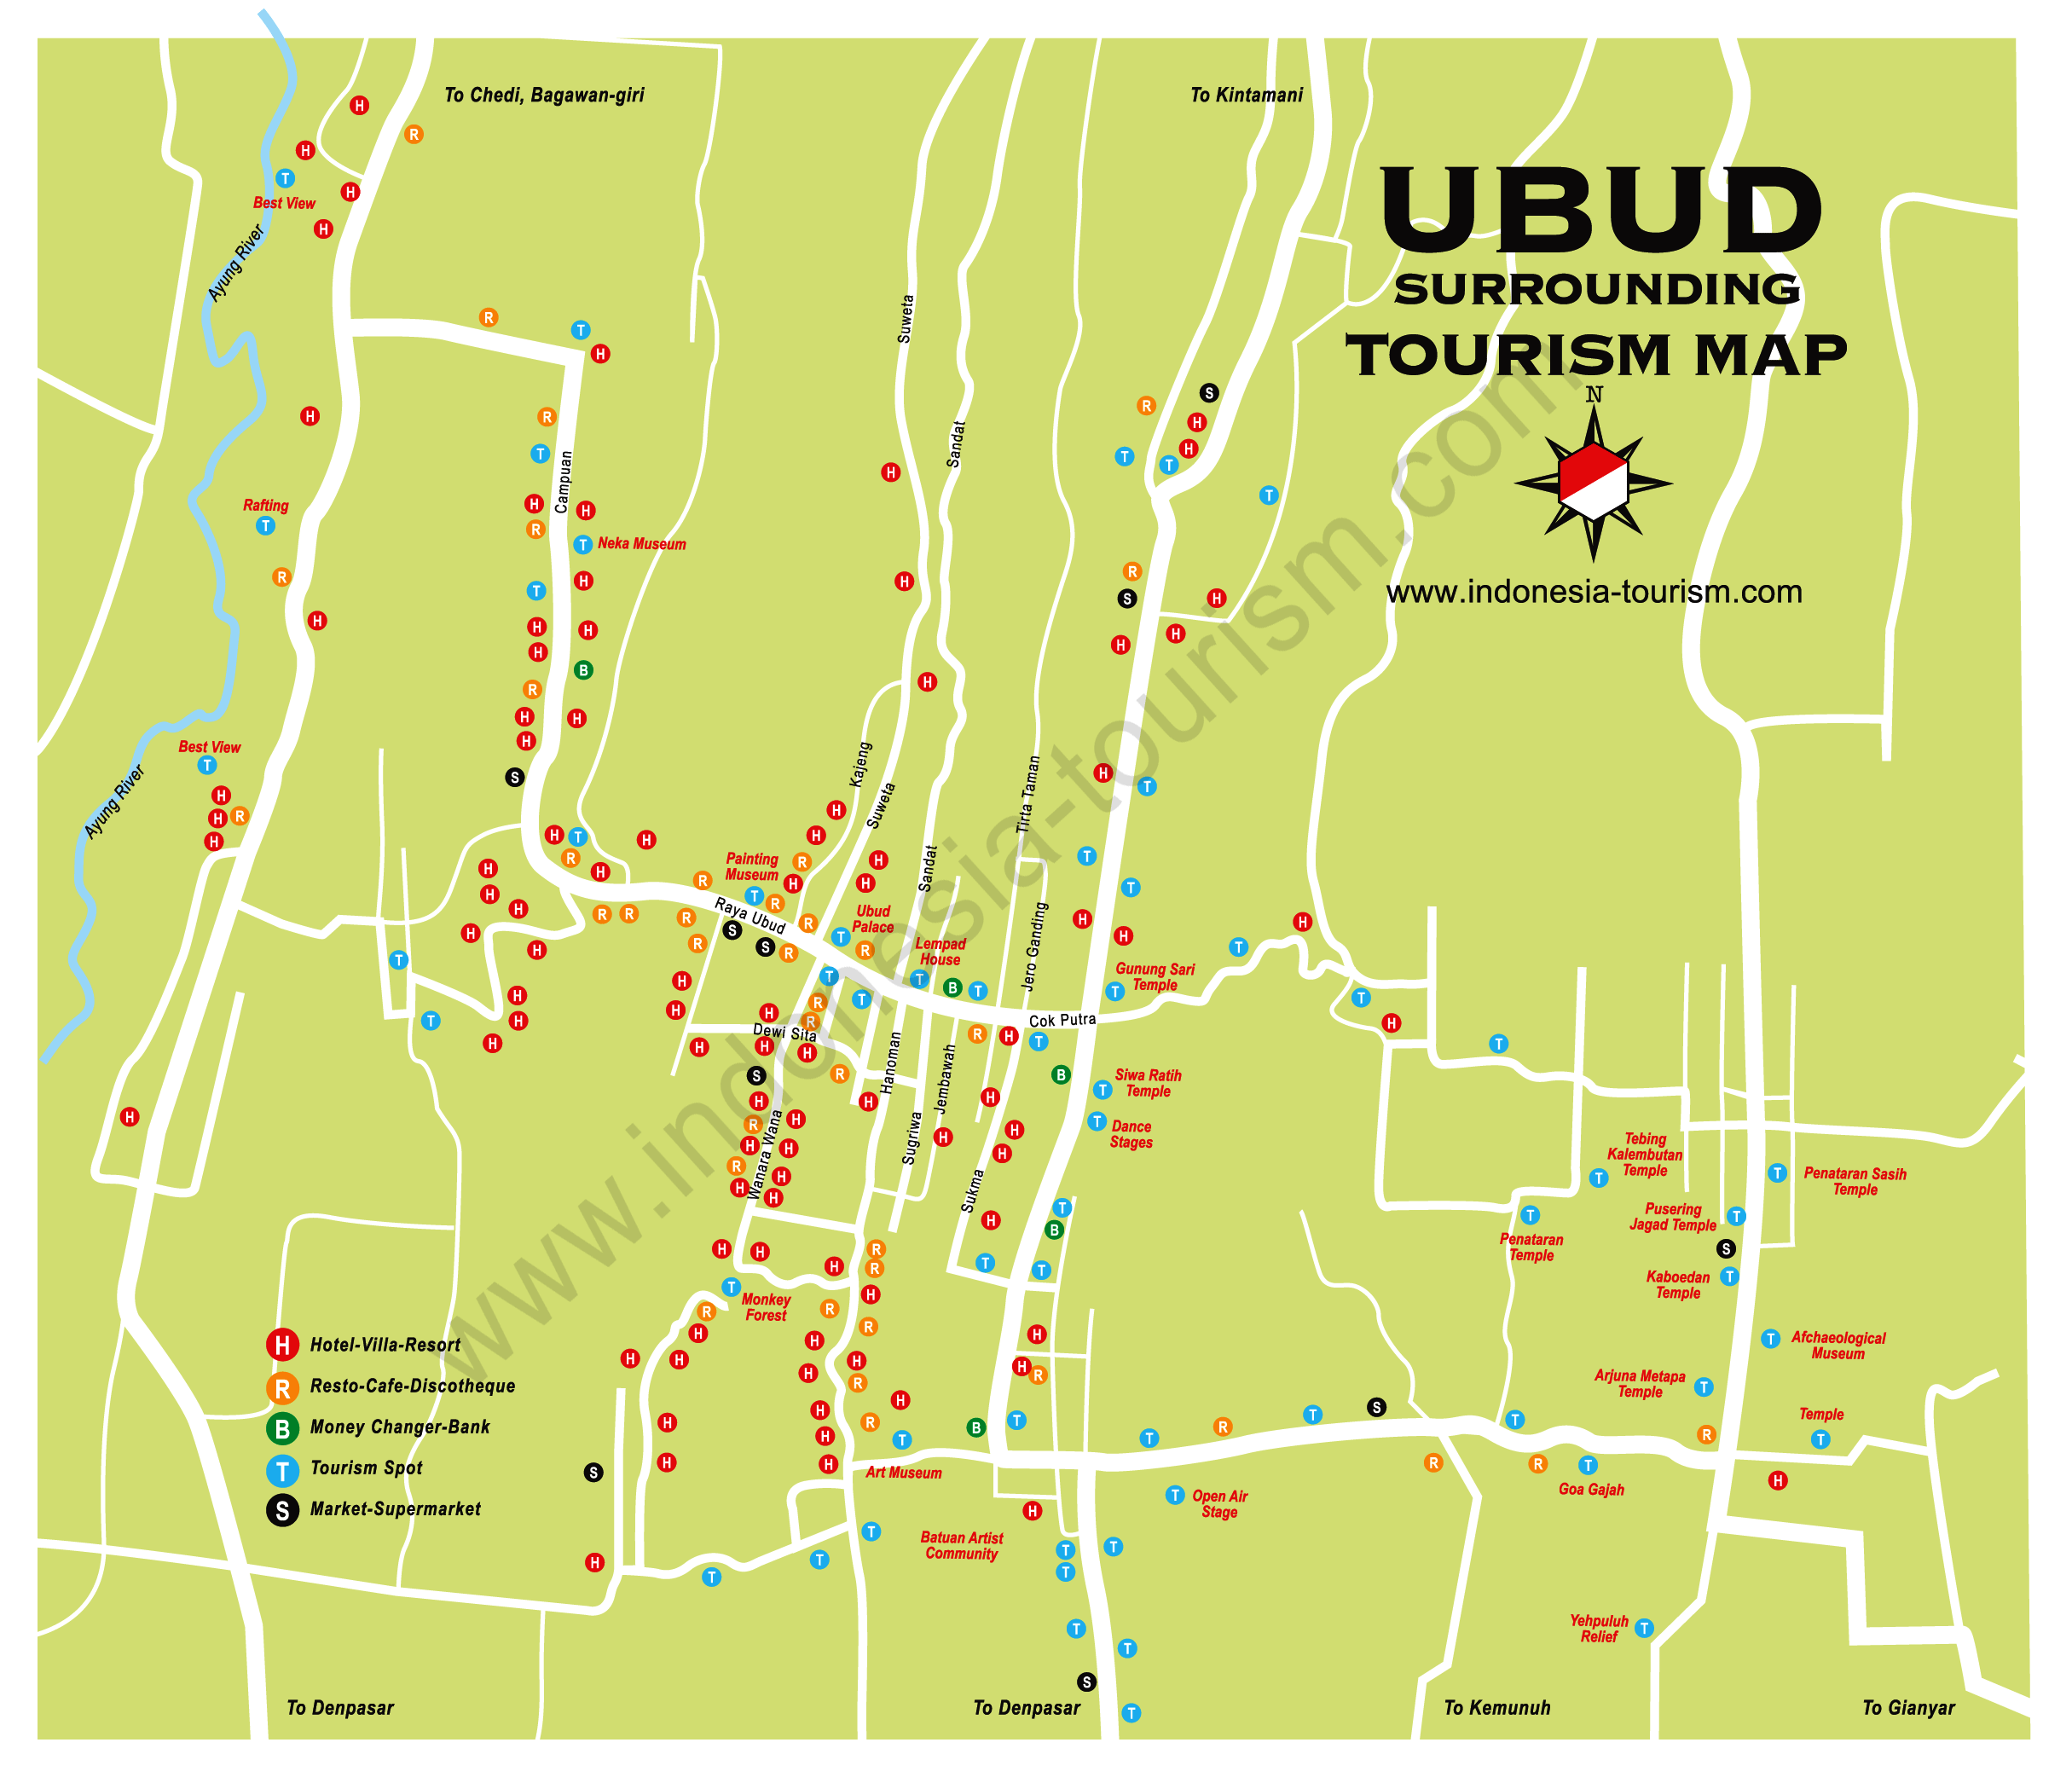 things to do in ubud,ubud villas hotels monkey forest map photos,uma ubud bali,ubud weather forecast report,weather report ubud,ubud bali weather january february march april may june july august september october november december,Map of the Ubud area,Ubud Tourism hotels map